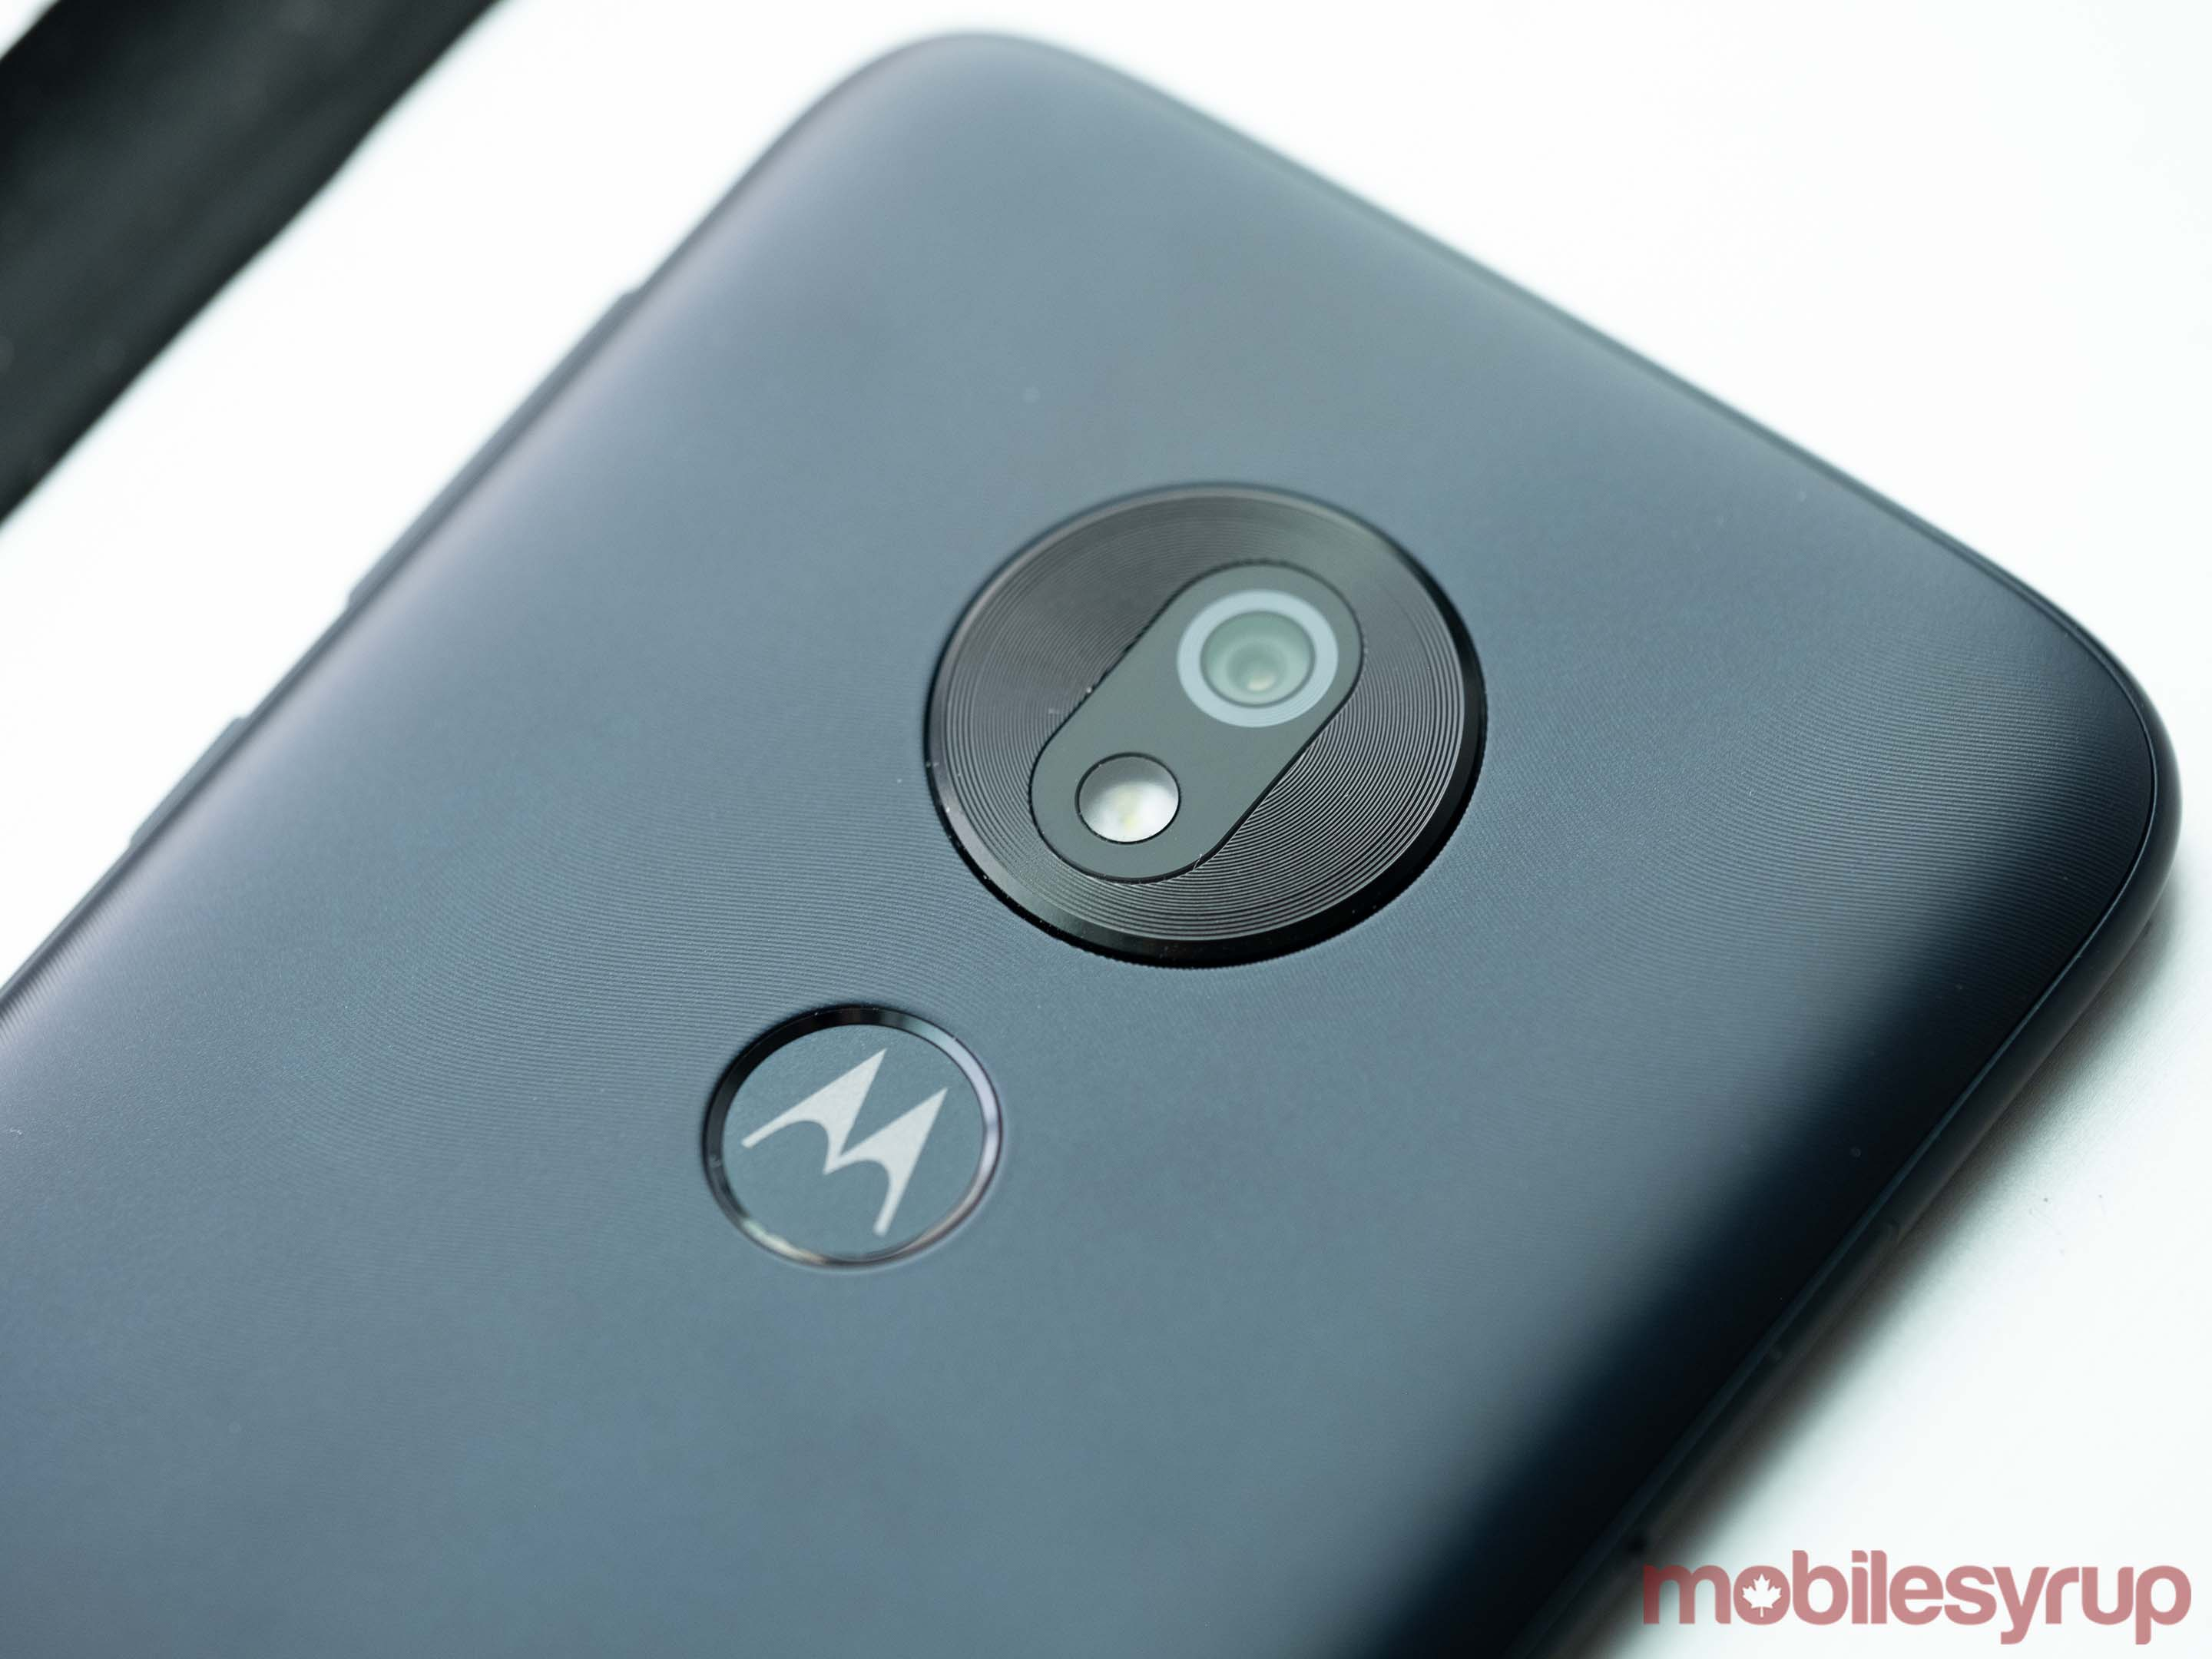 Moto G7 family Hands-on: Premium looks, affordable price